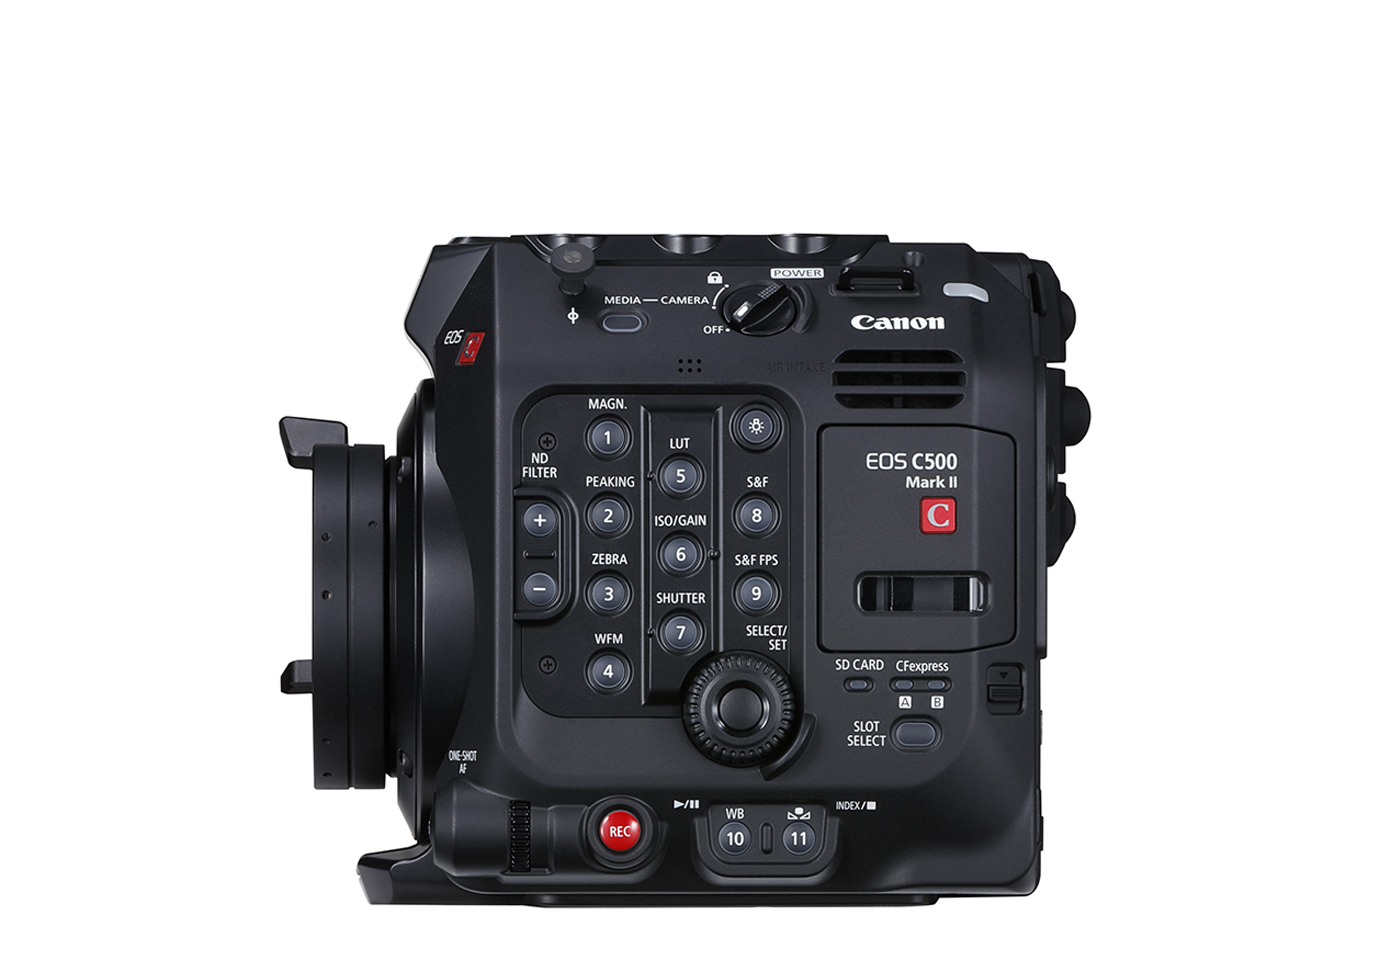 Side profile image for EOS C500 Mark II